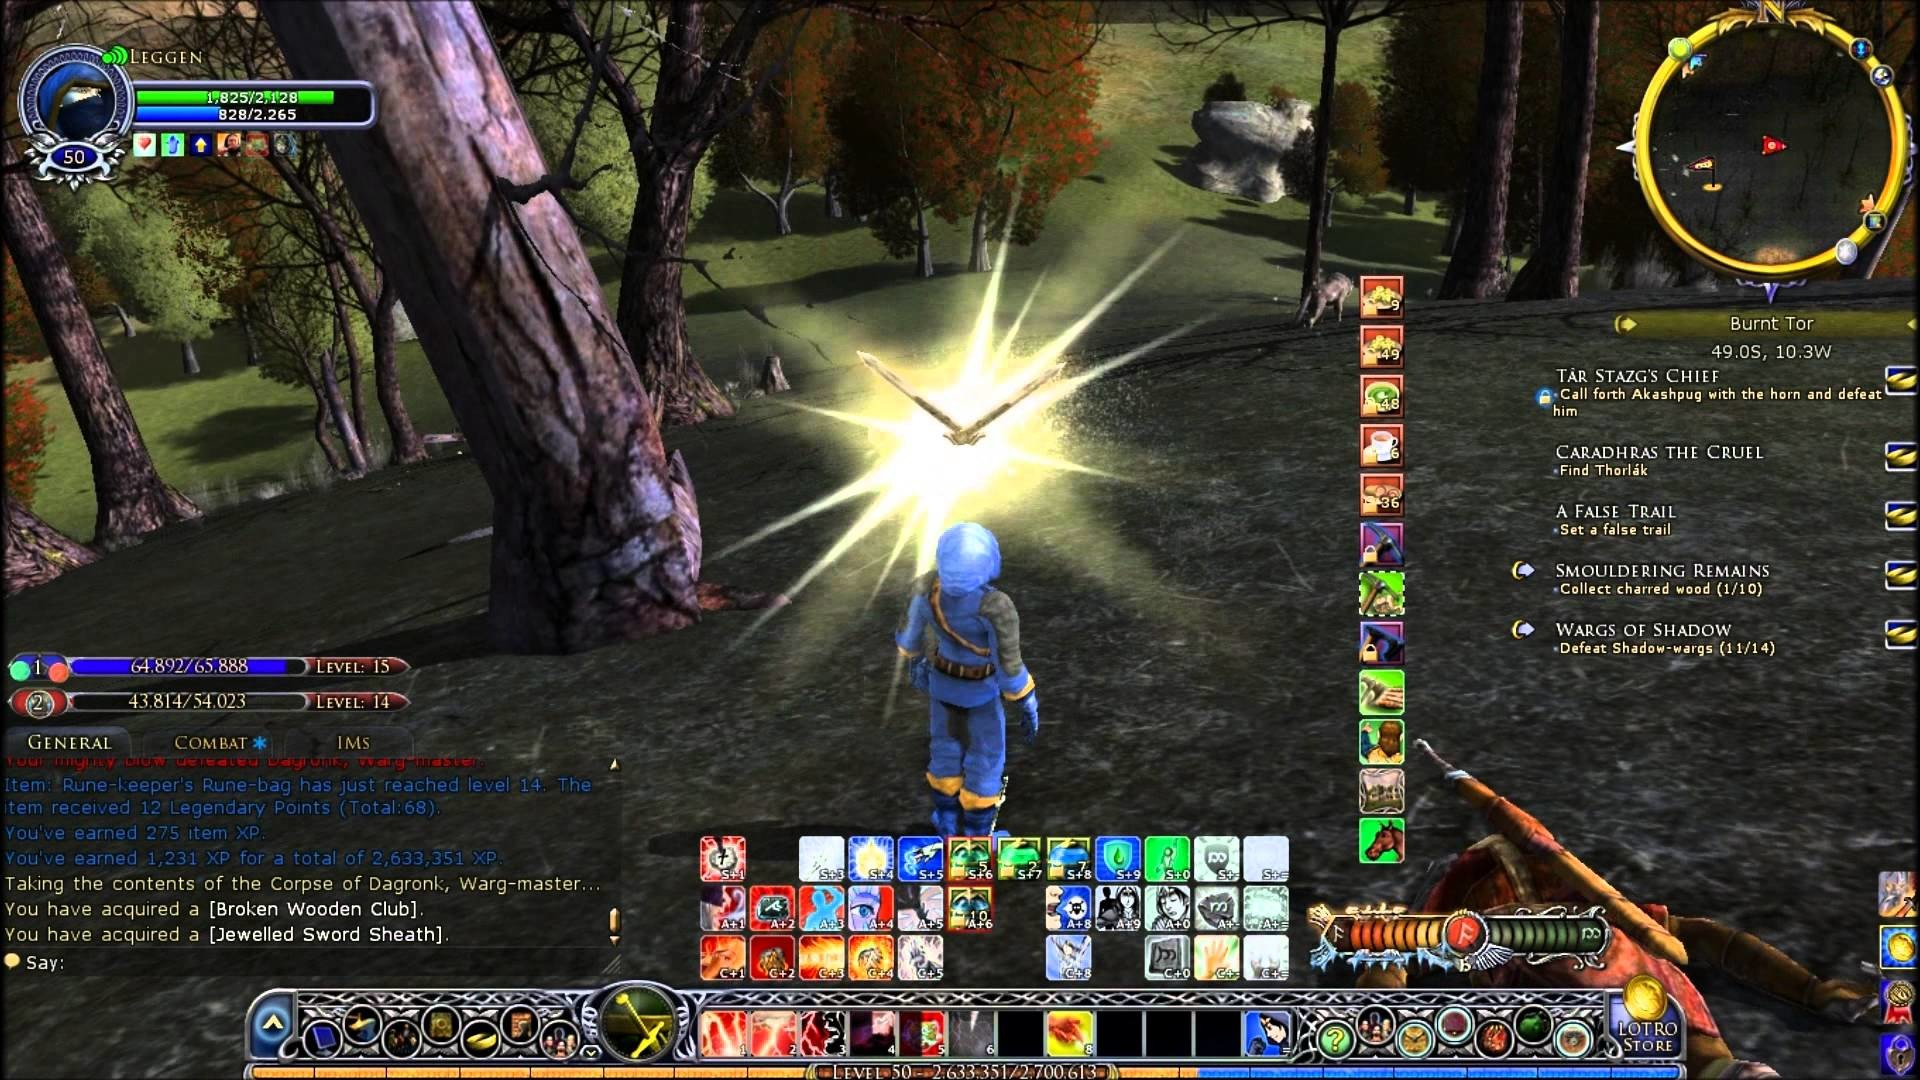 1920x1080 LOTRO - Rune Keeper Gameplay (Level 50) [Lord of the Rings Online Gameplay]  - YouTube